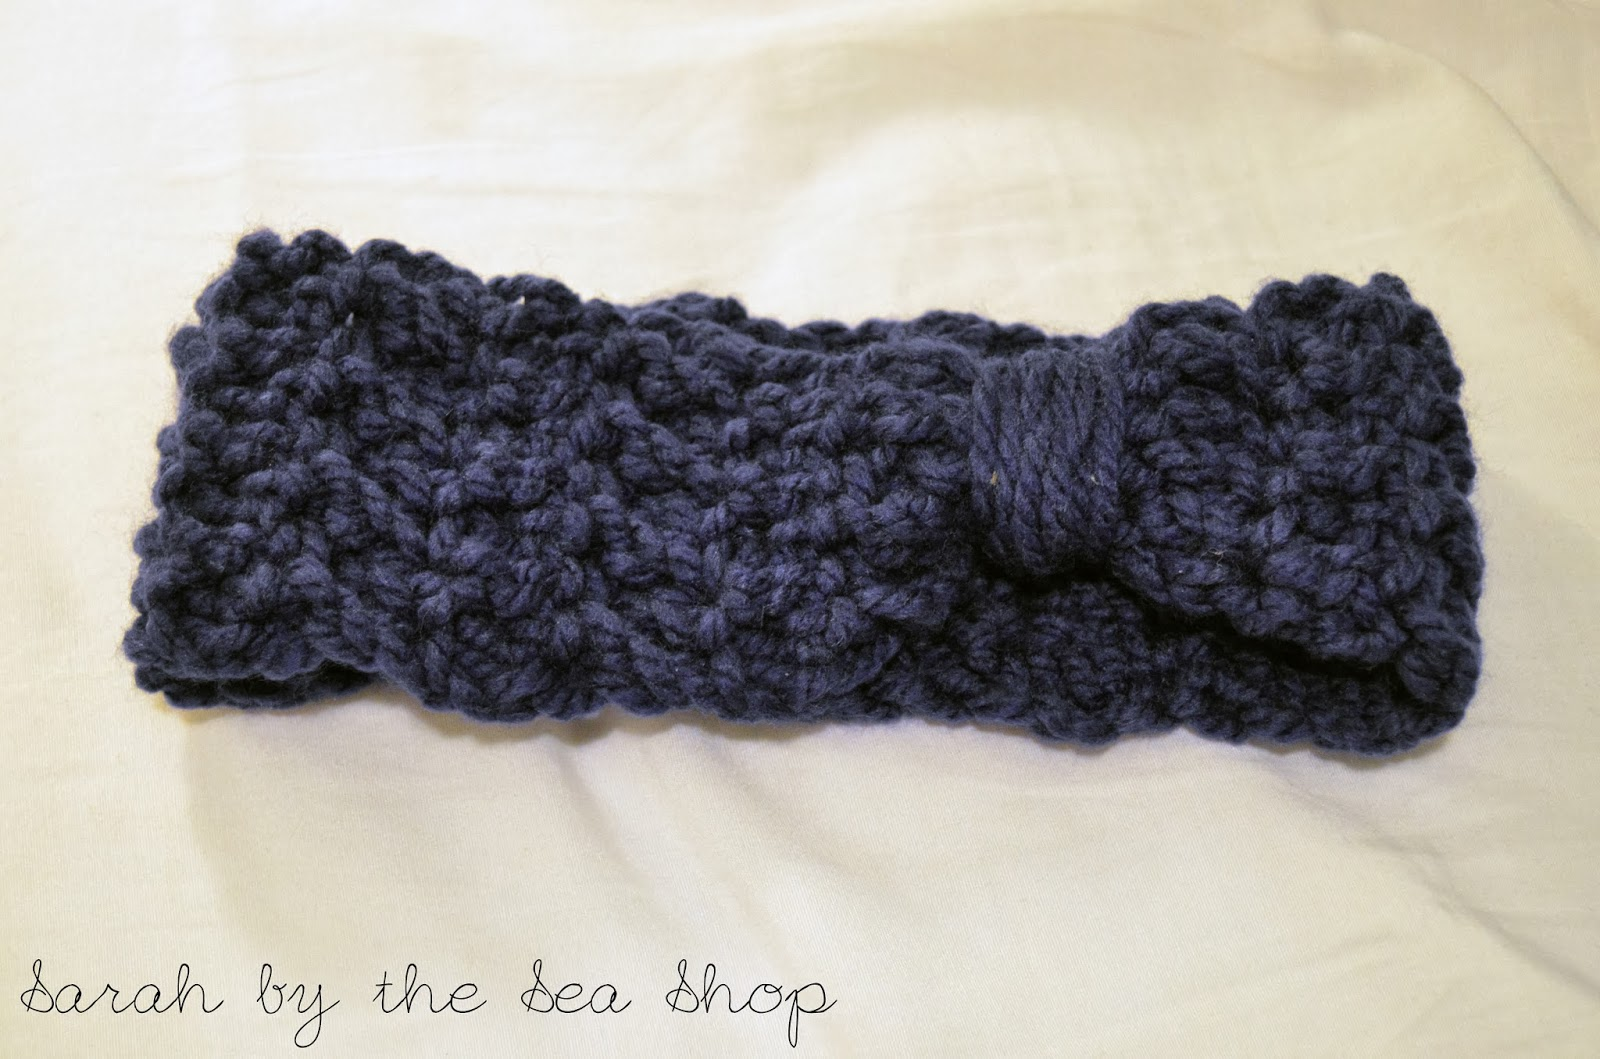 https://www.etsy.com/ca/listing/181060792/ladies-crocheted-headband-denim-blue?ref=listing-shop-header-0